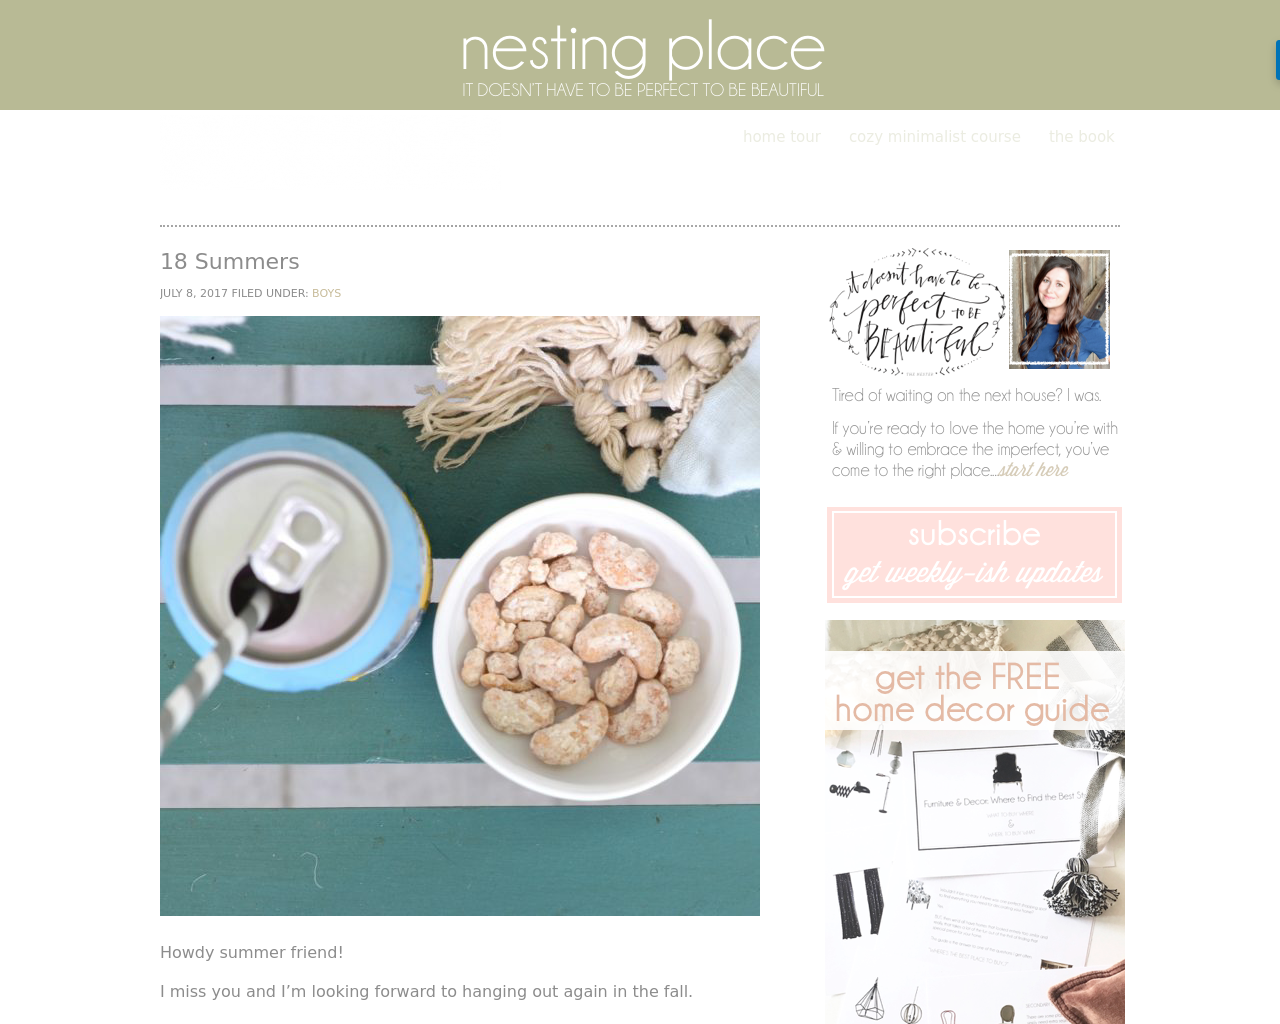 nesting-place-Advertising-Reviews-Pricing